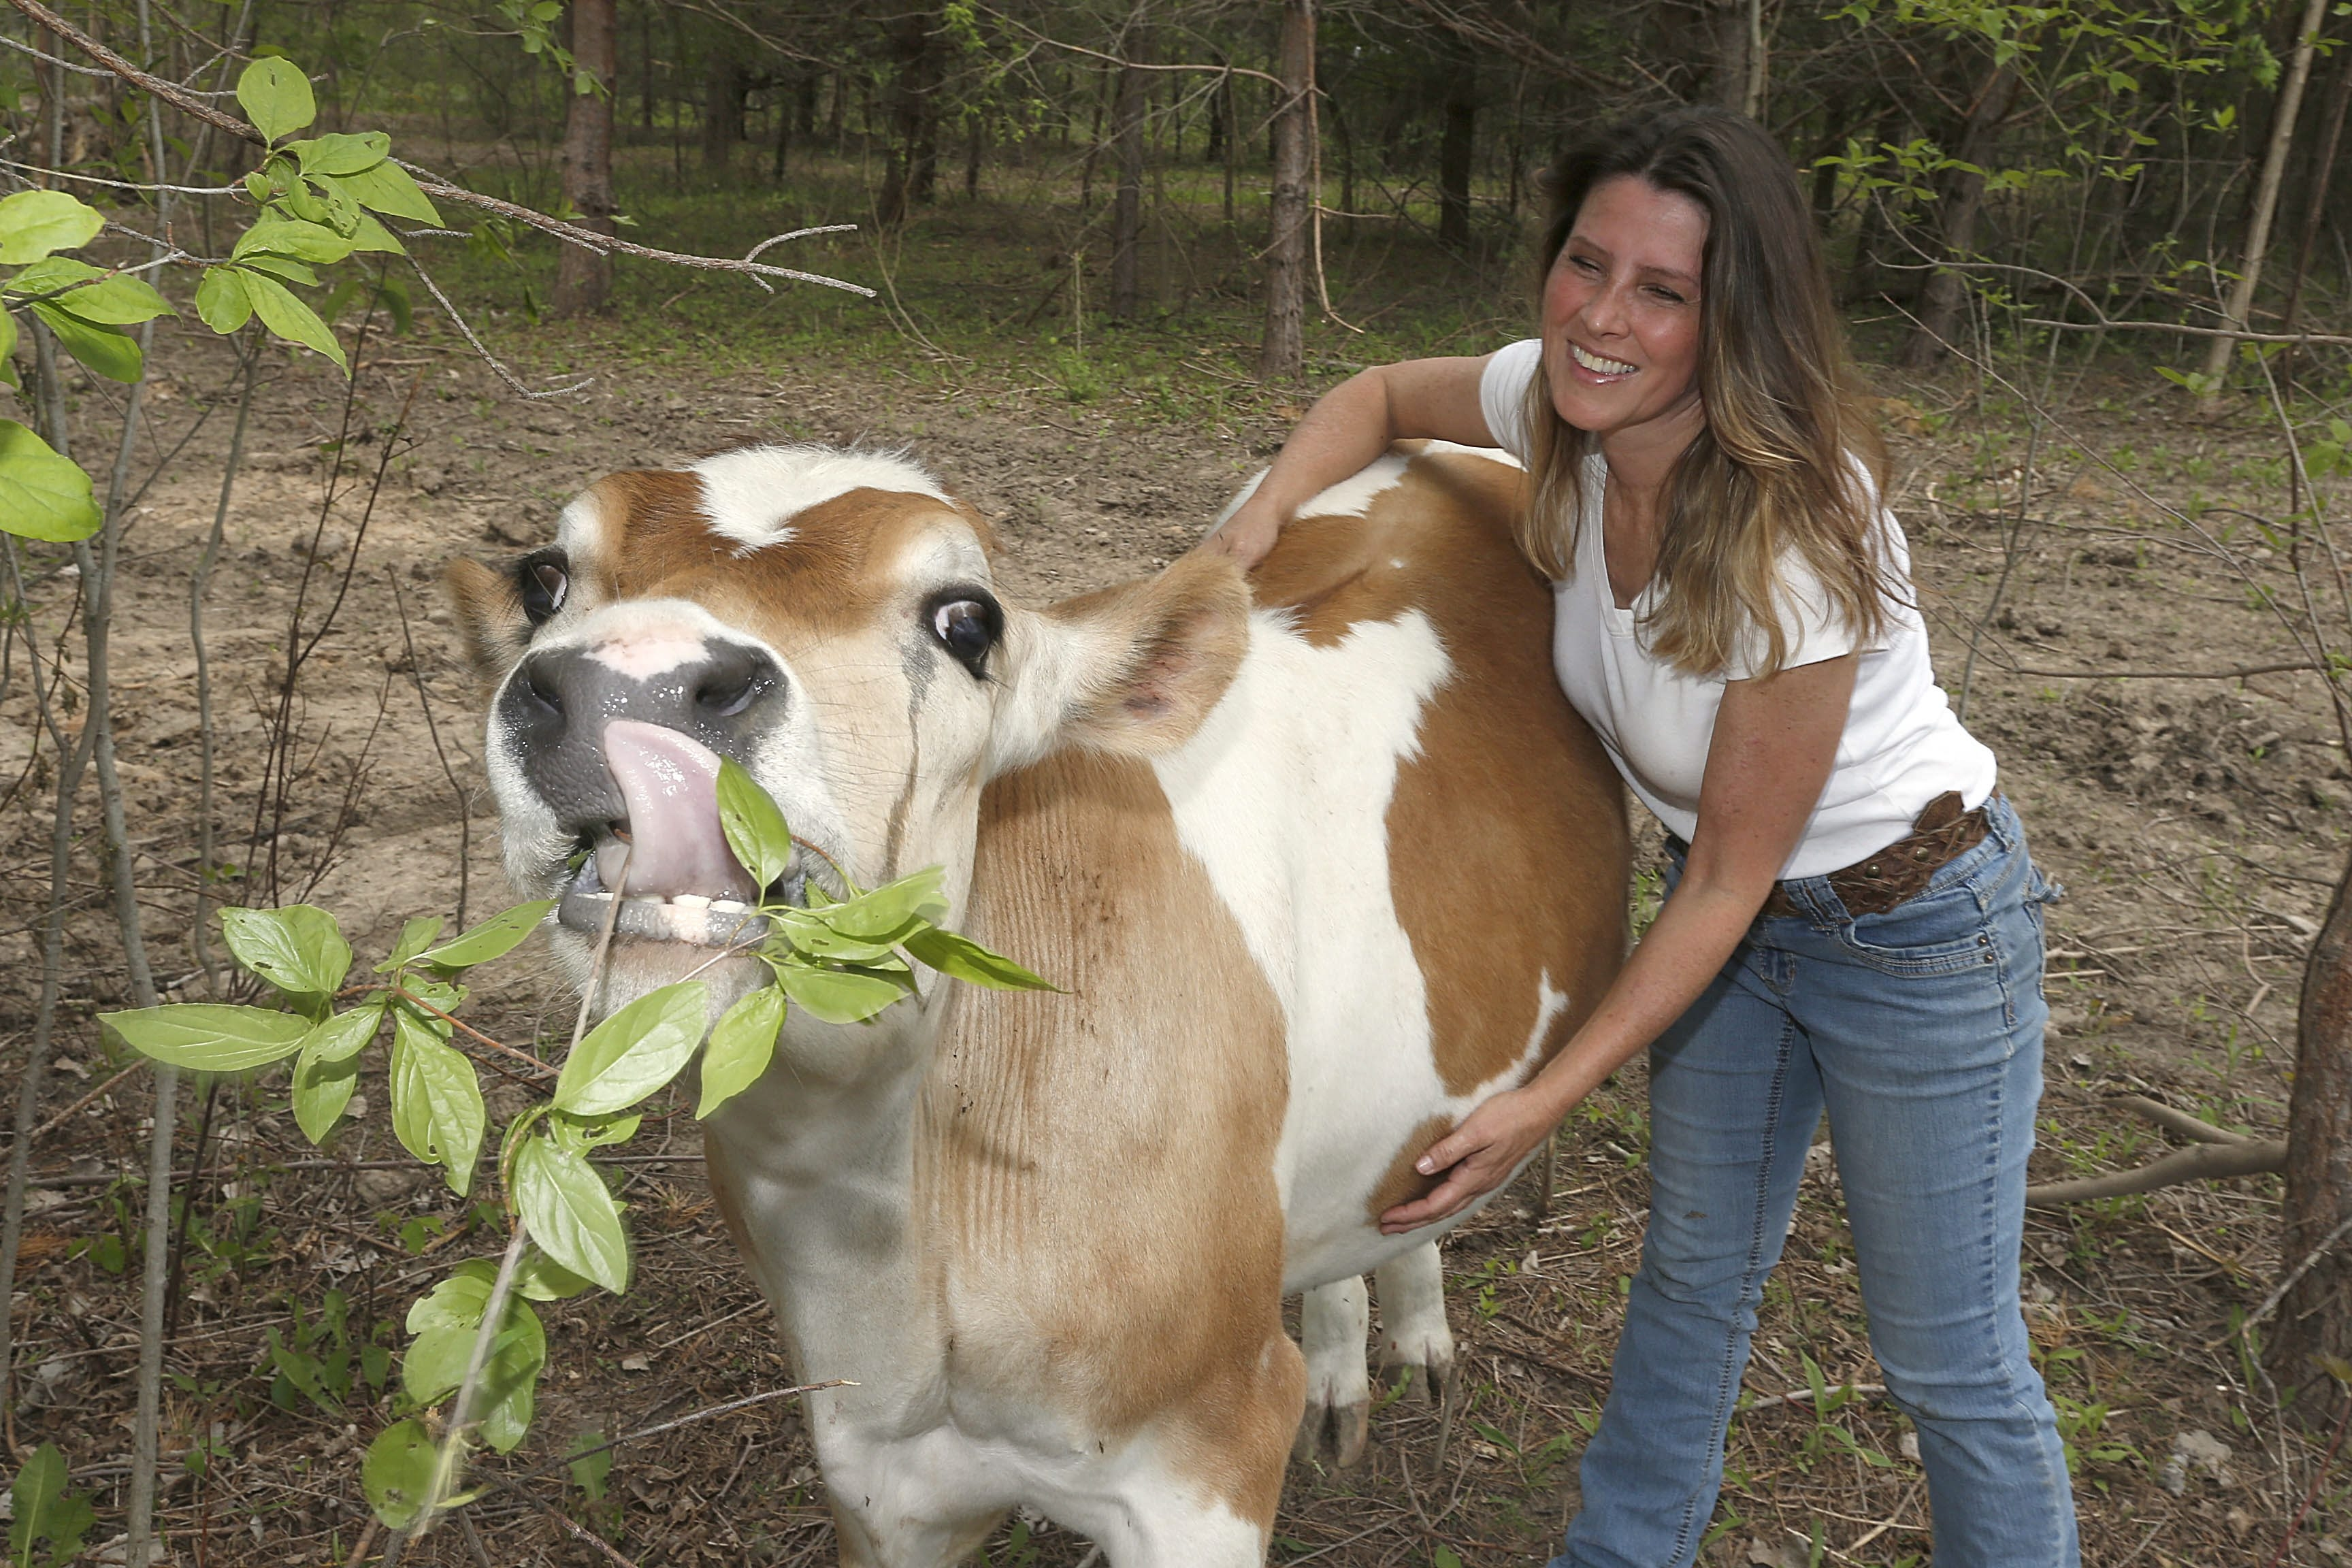 Tracy Murphy, founder of Asha – Acres of Sanctuary and Hope for Animals – in Newfane, is happy with the recovery of Albert, a Jersey steer she rescued six months ago as a seemingly doomed day-old calf, as they await their public festivities next Sunday.